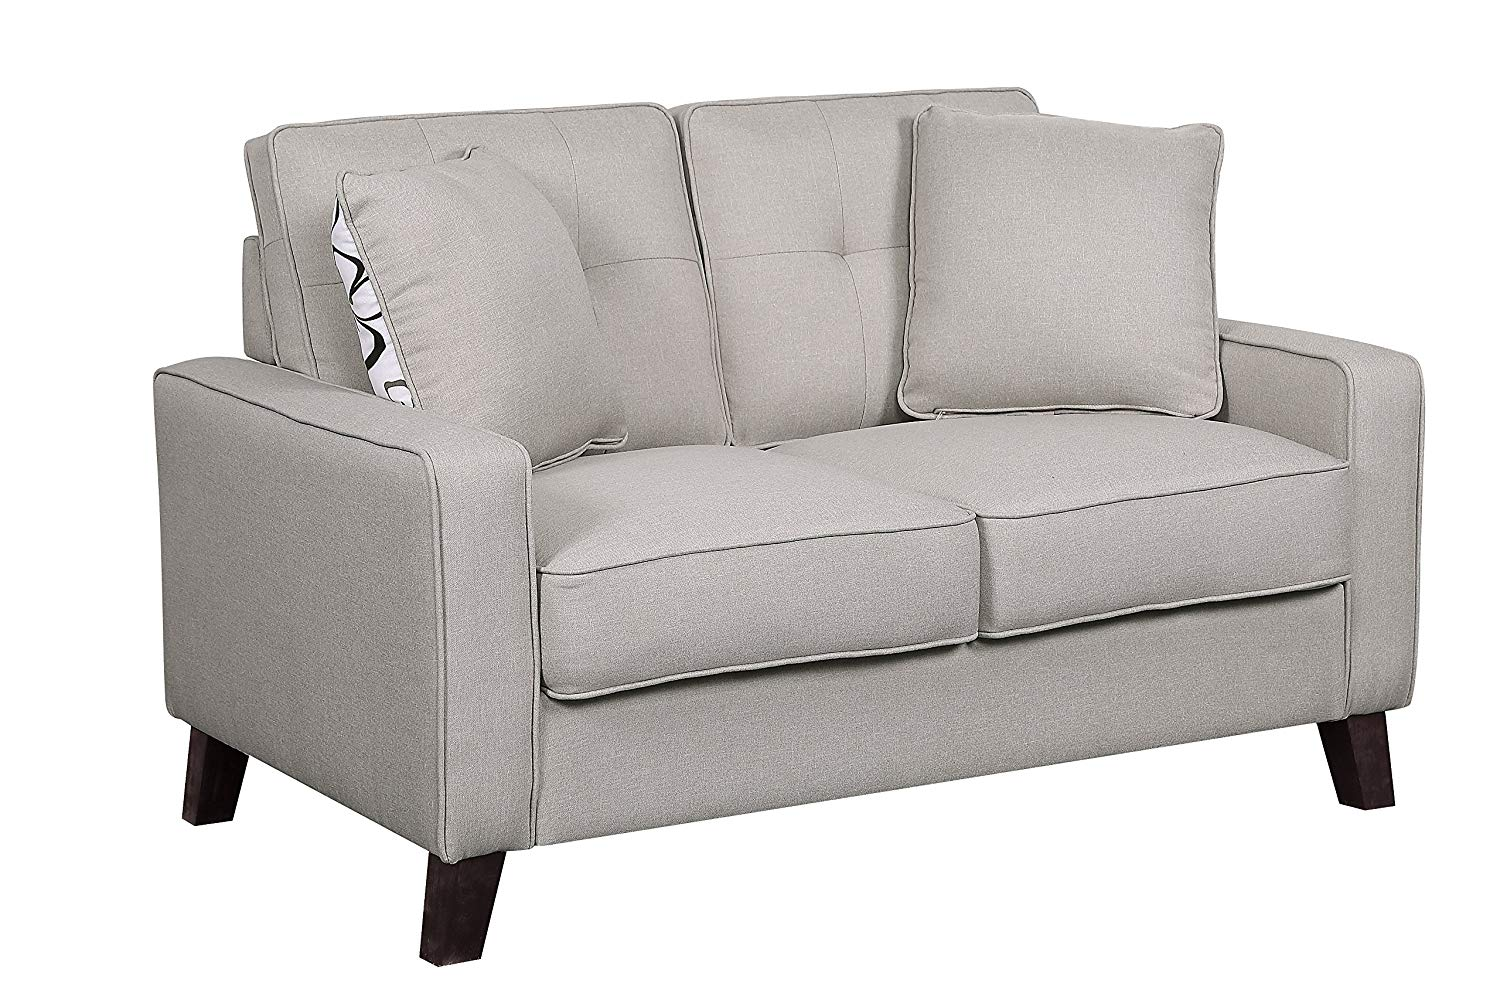 Container Furniture Direct S5309-L Lillana Linen Upholstered Mid-Century Modern Loveseat with Two Accent Pillows, Beige